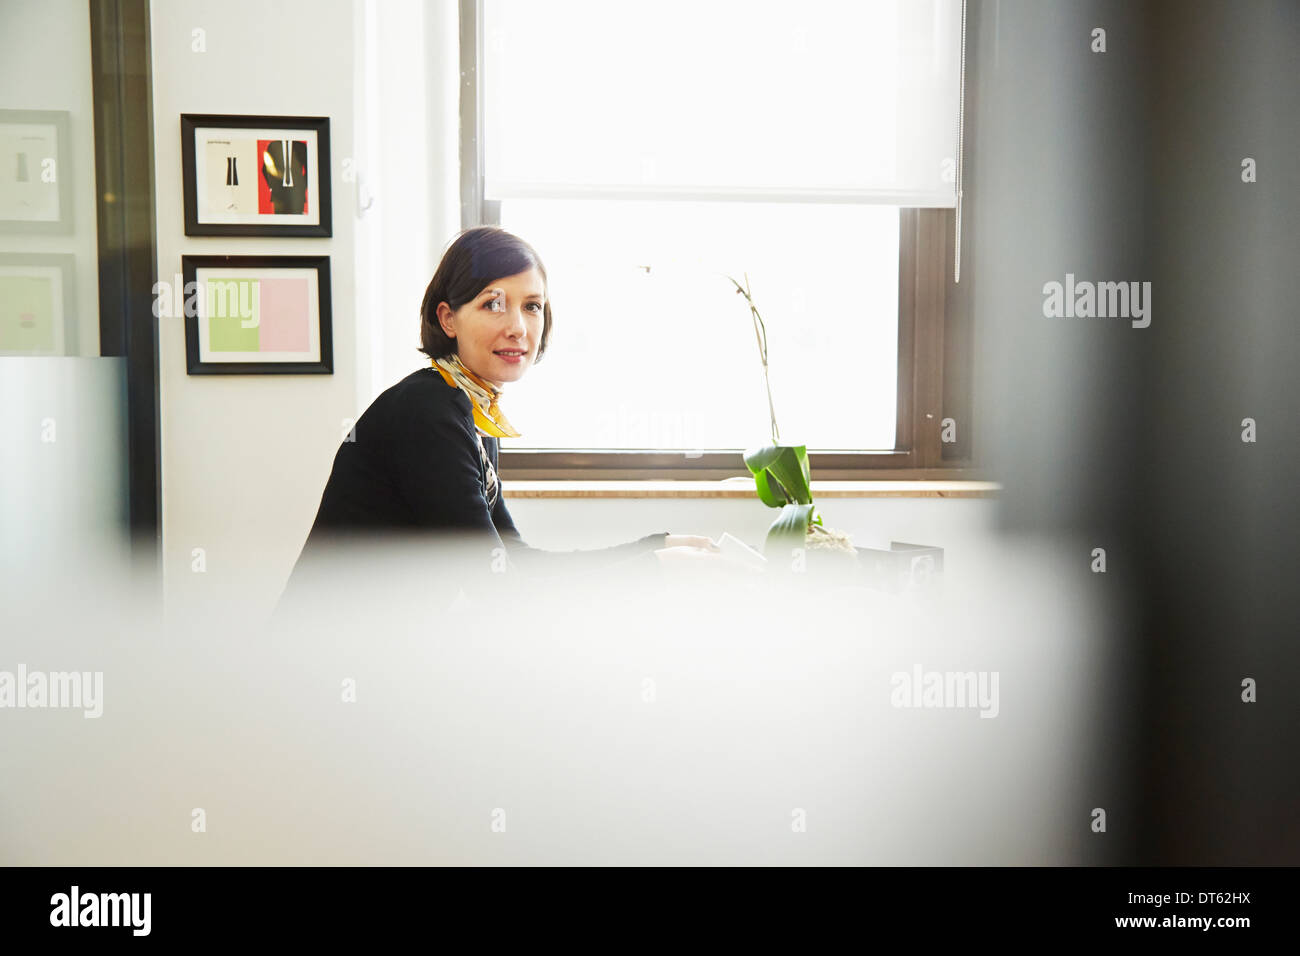 Businesswoman in office - Stock Image